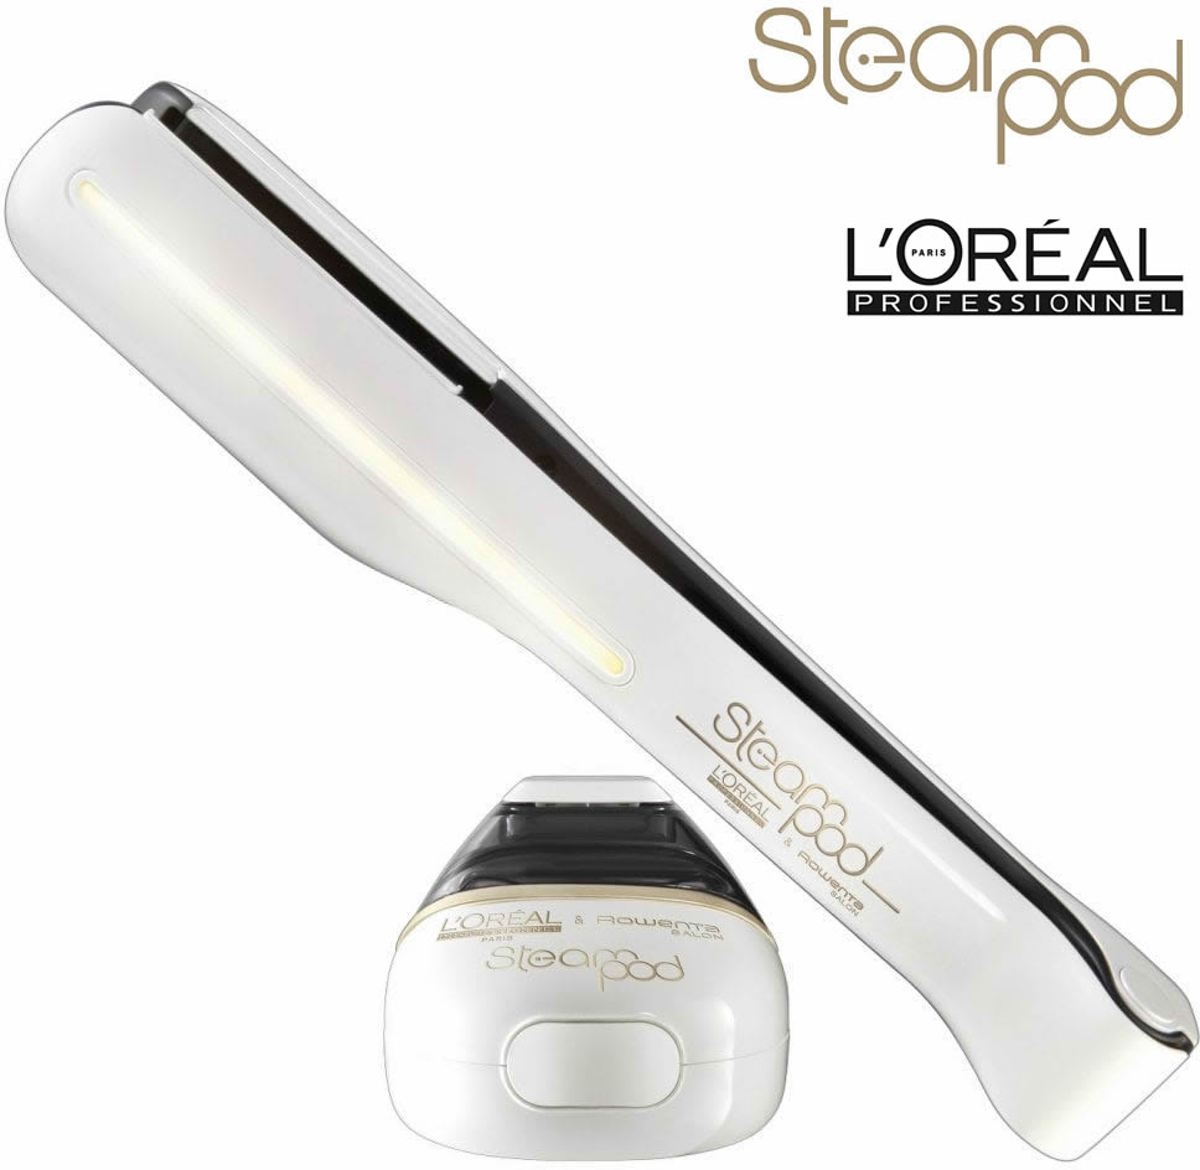 L'Oreal Steampod 2.0 | Stoom stijltang | 140-210°C  | Steam Pod | WIT